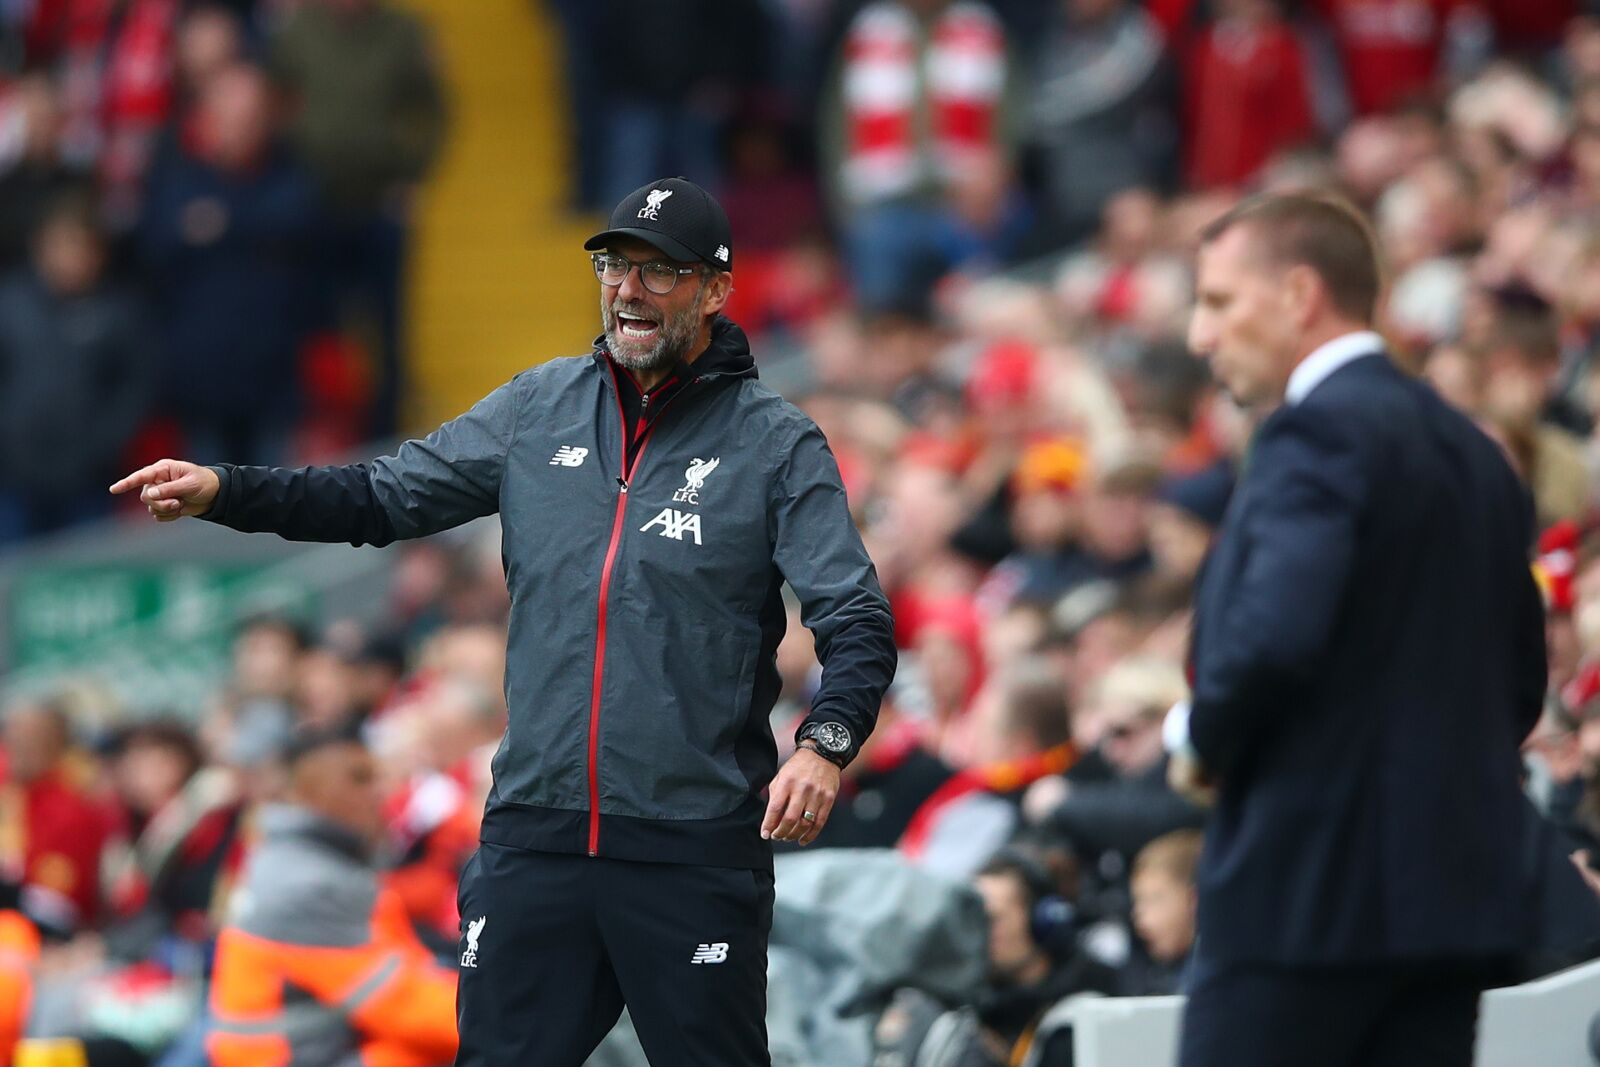 Leicester City will finish in the top four, says Jurgen Klopp